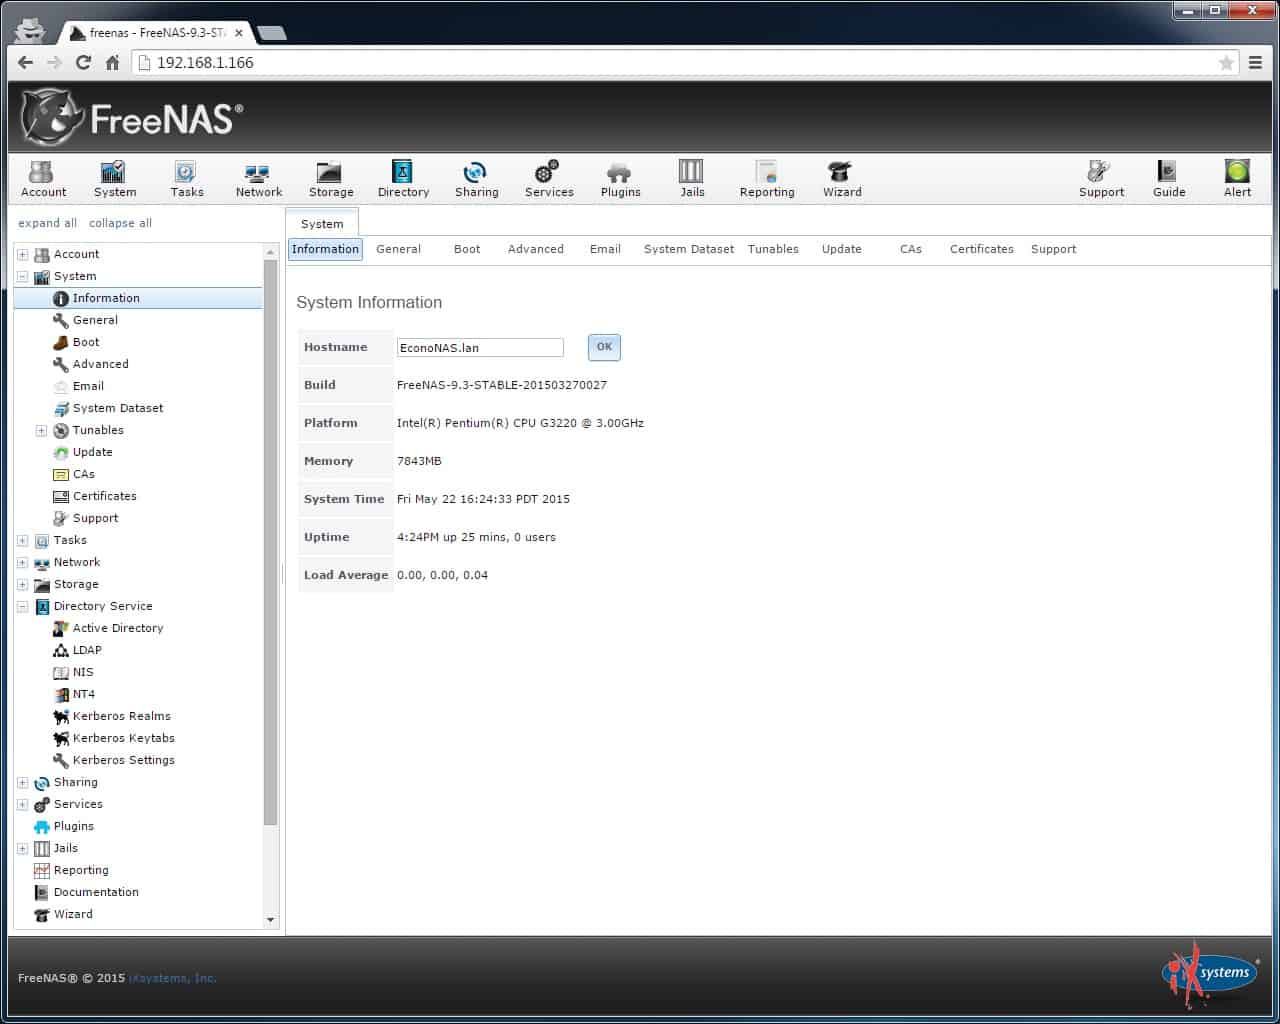 Updating the FreeNAS Hostname